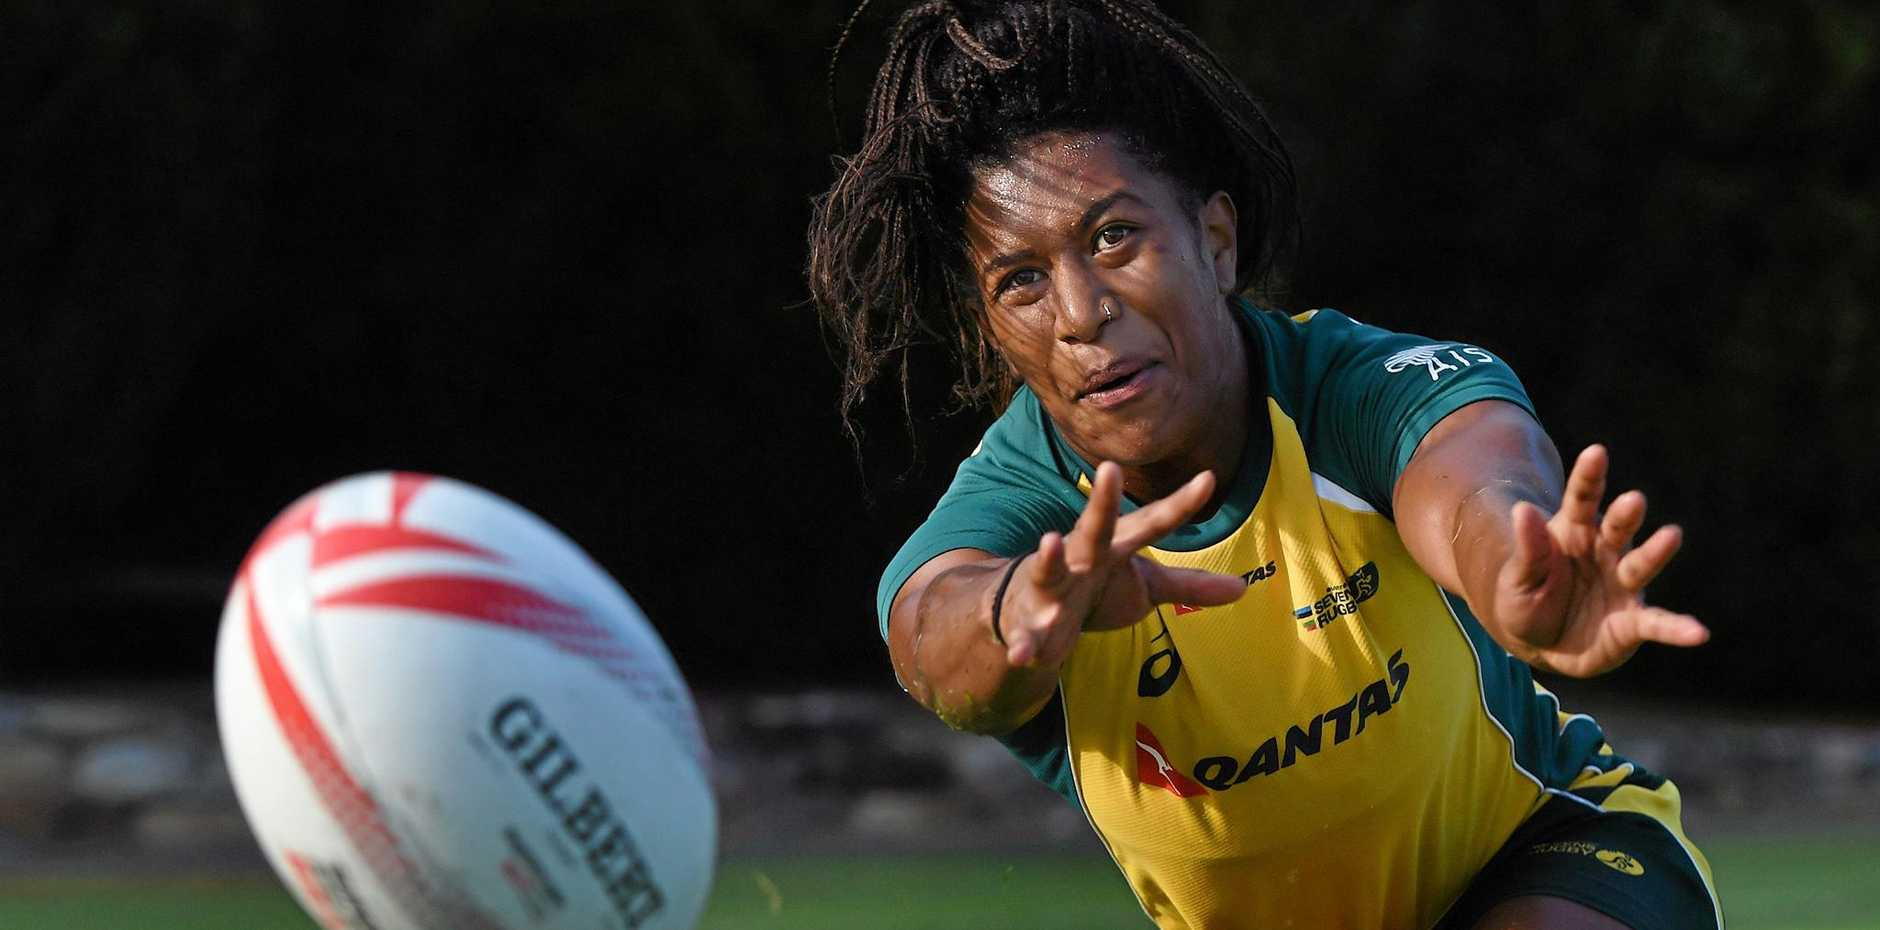 Australian Rugby Sevens team member Ellia Green during a team training session